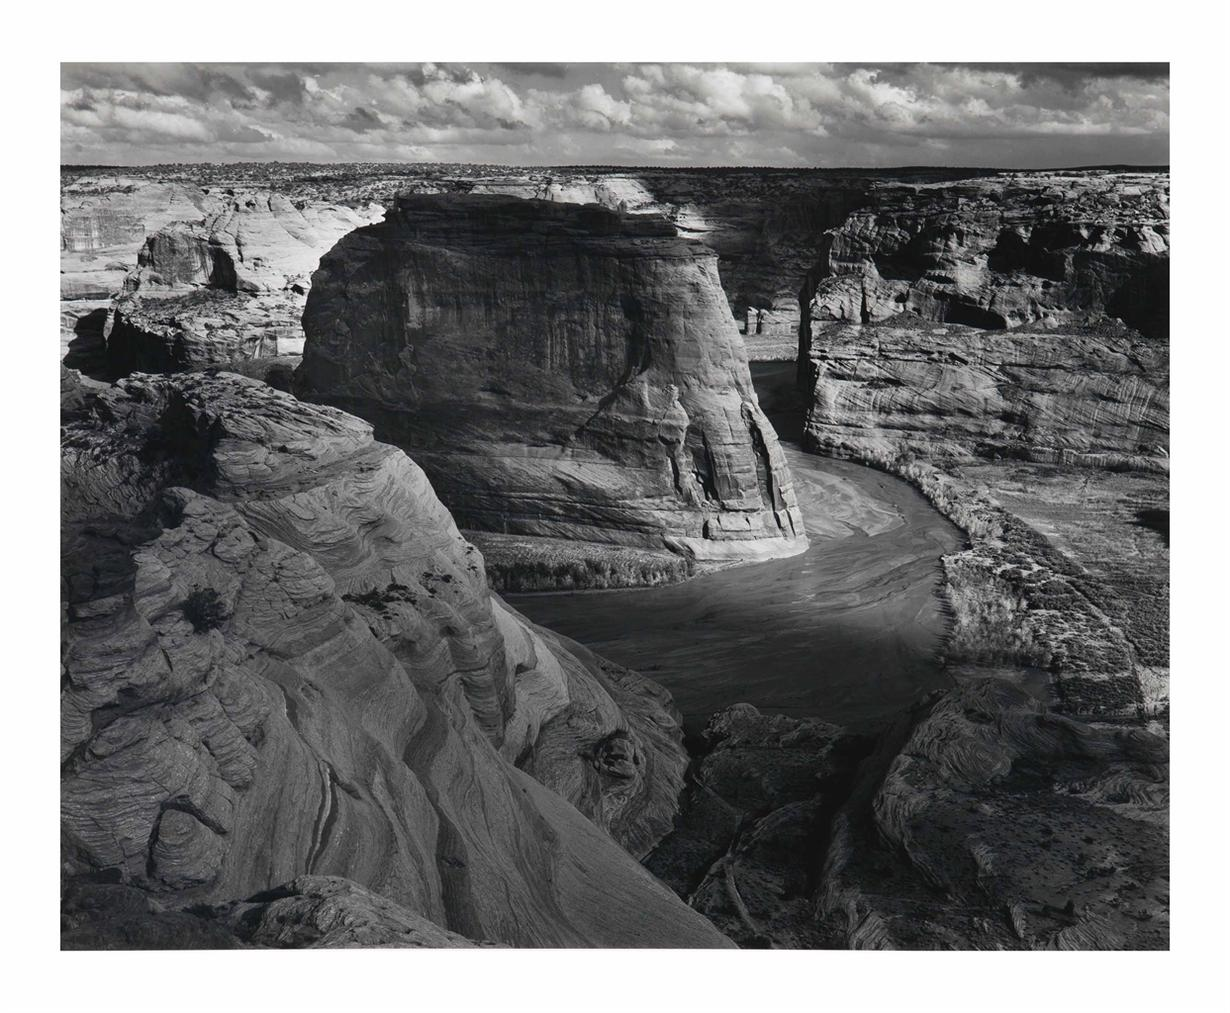 Ansel Adams-Canyon De Chelly From White House Overlook, Canyon De Chelly National Monument, Arizona-1942